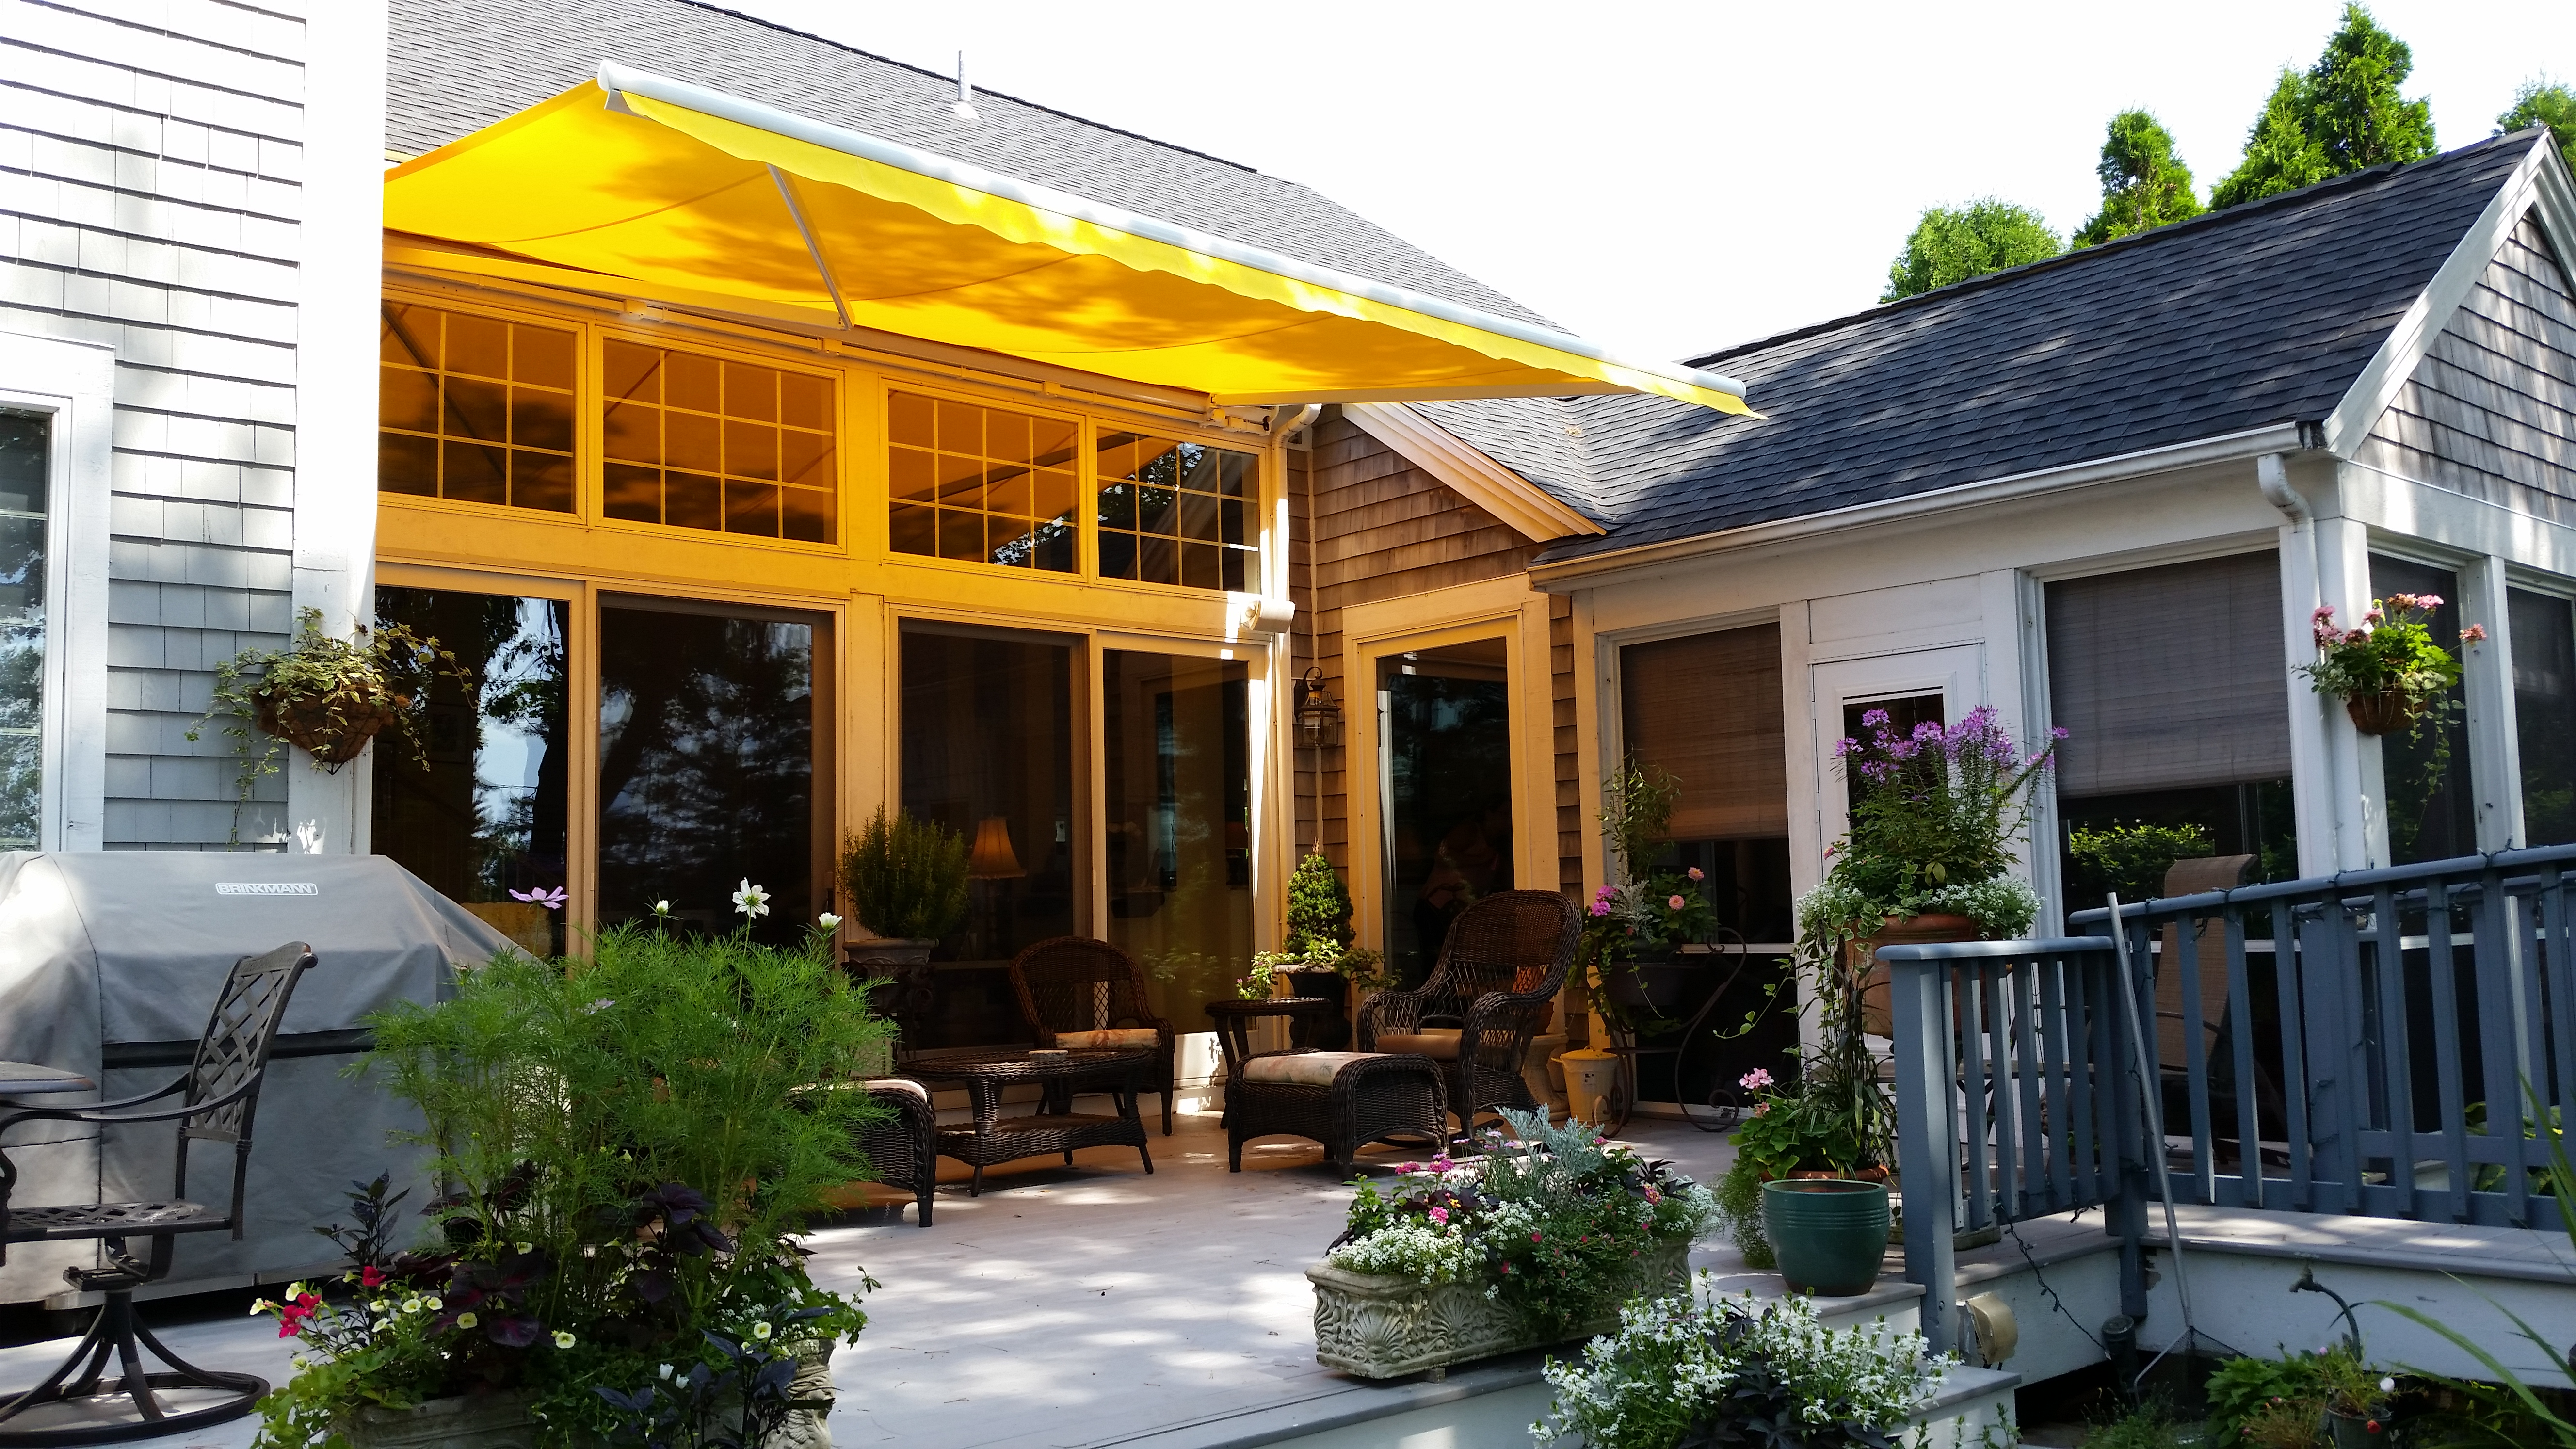 Stylish and Functional Awnings